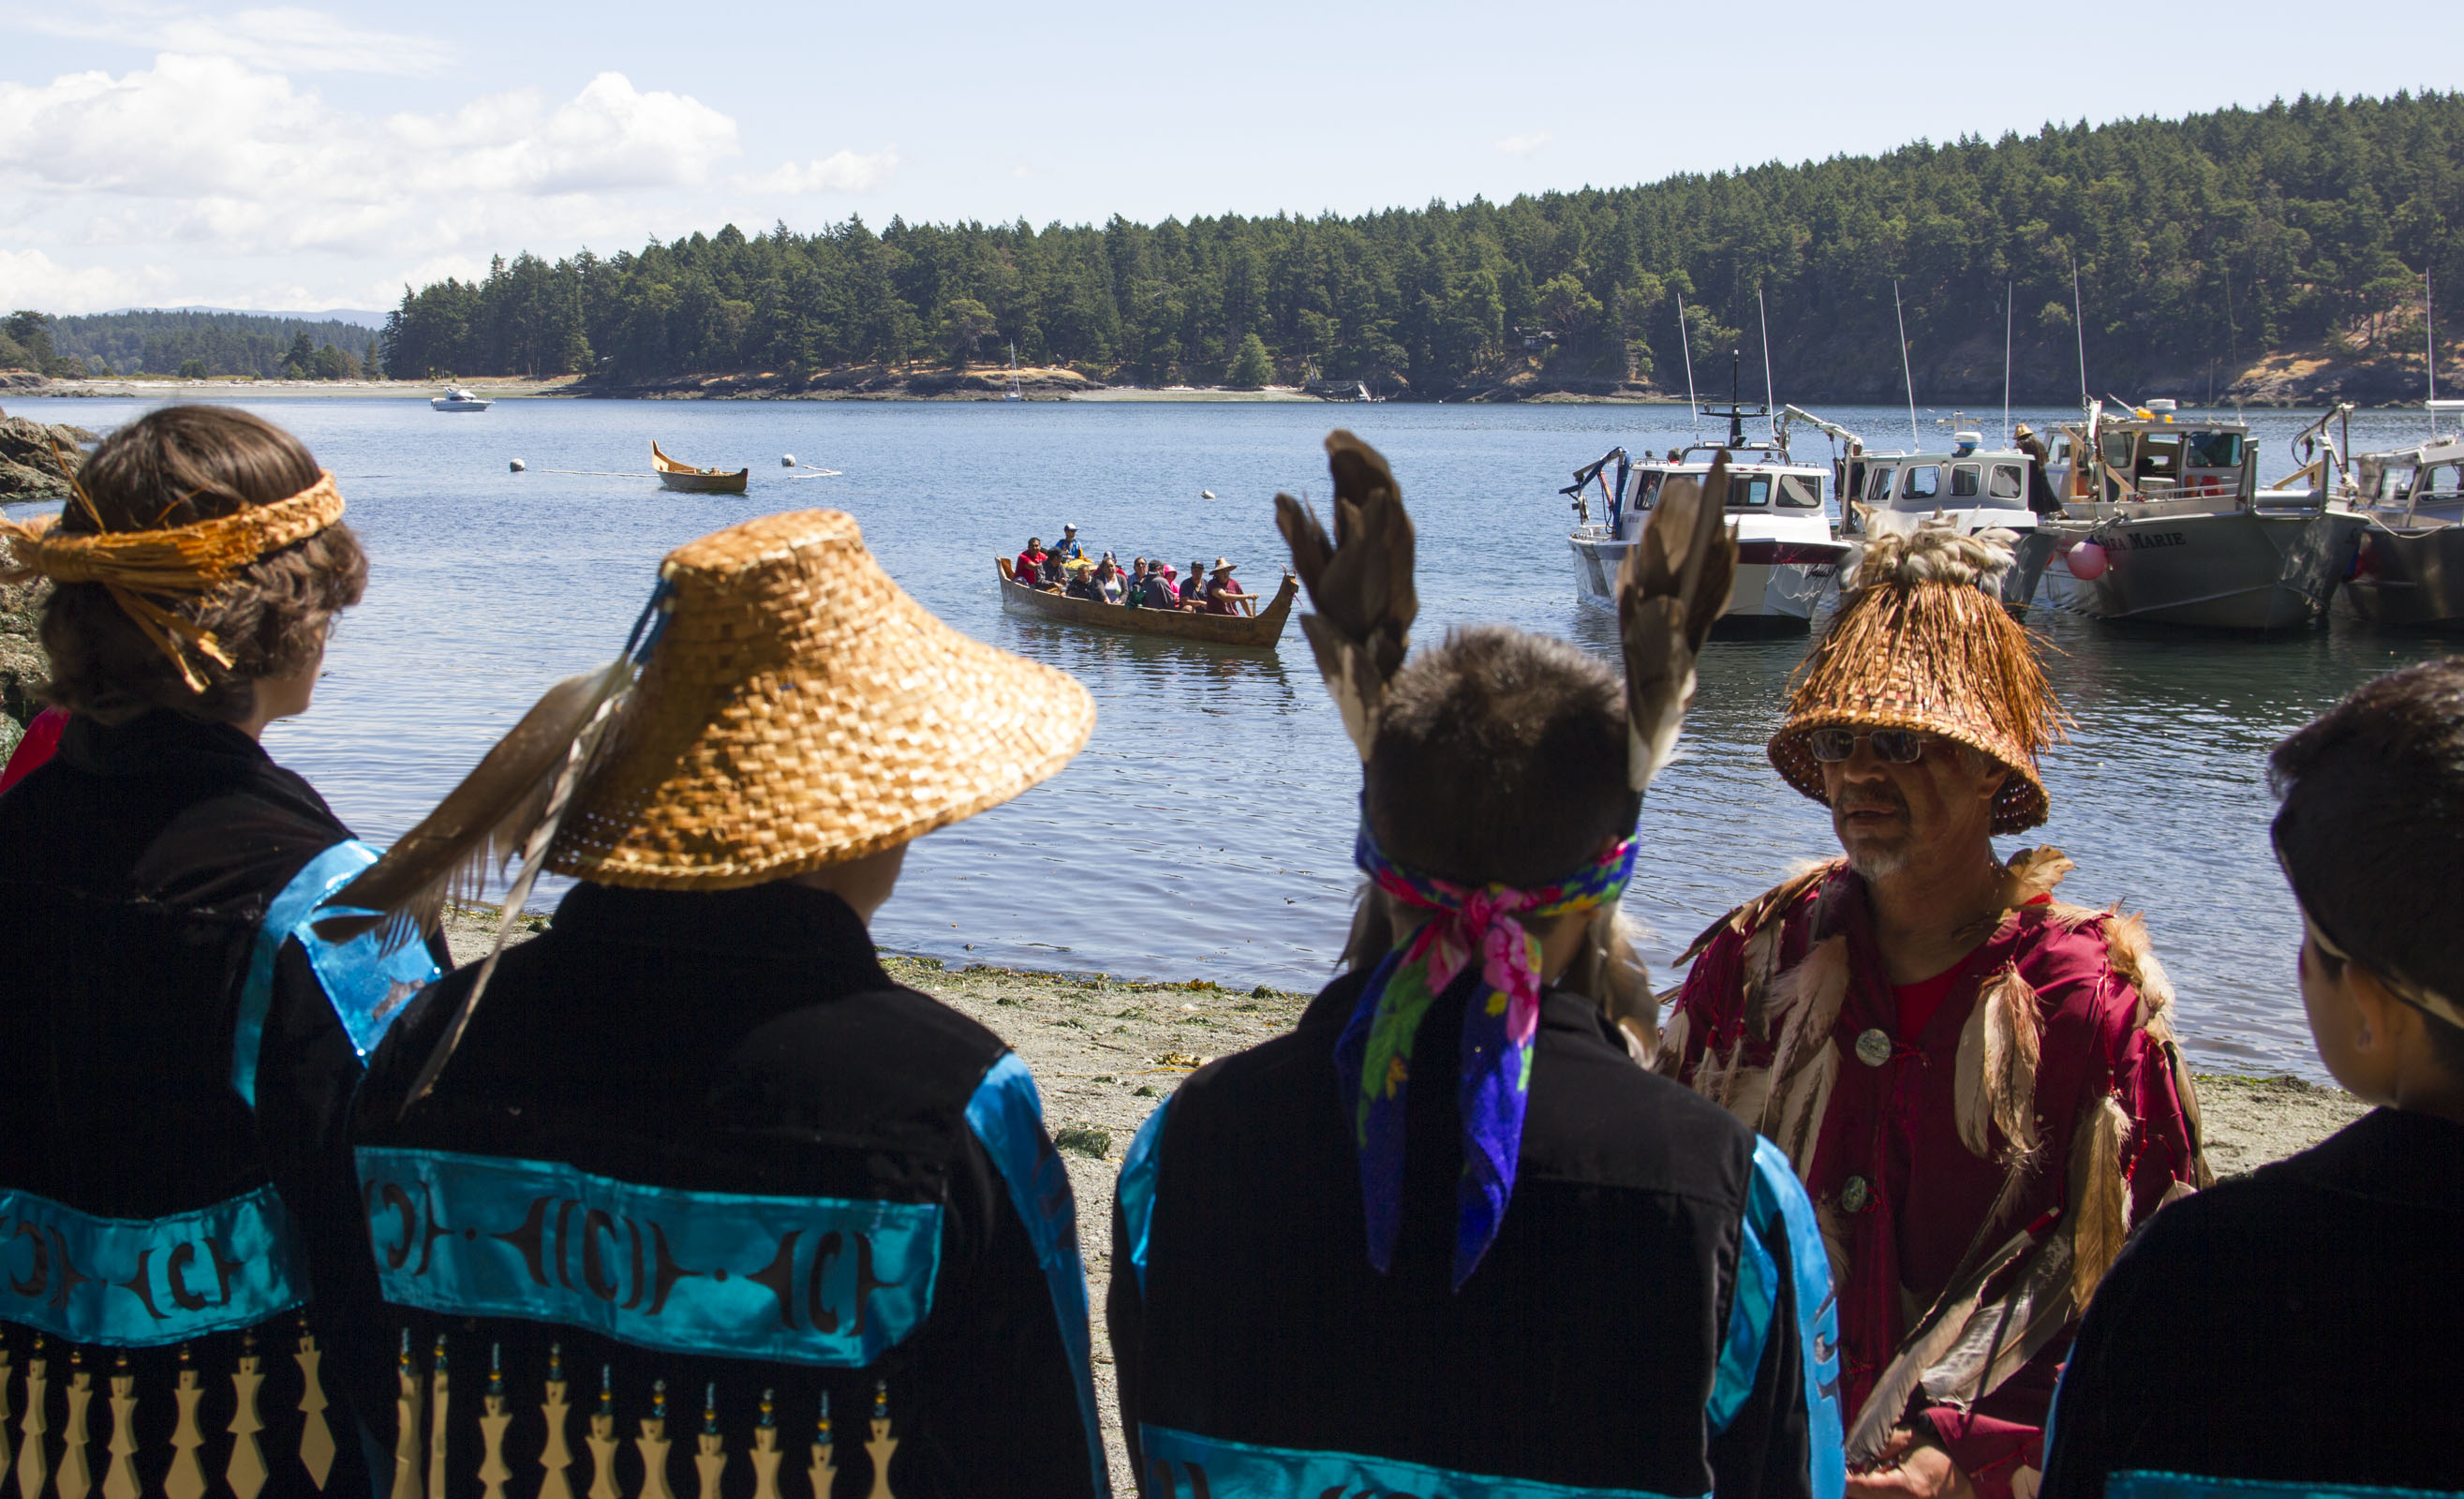 Lummi Nation members honor traditions at historical fishing site